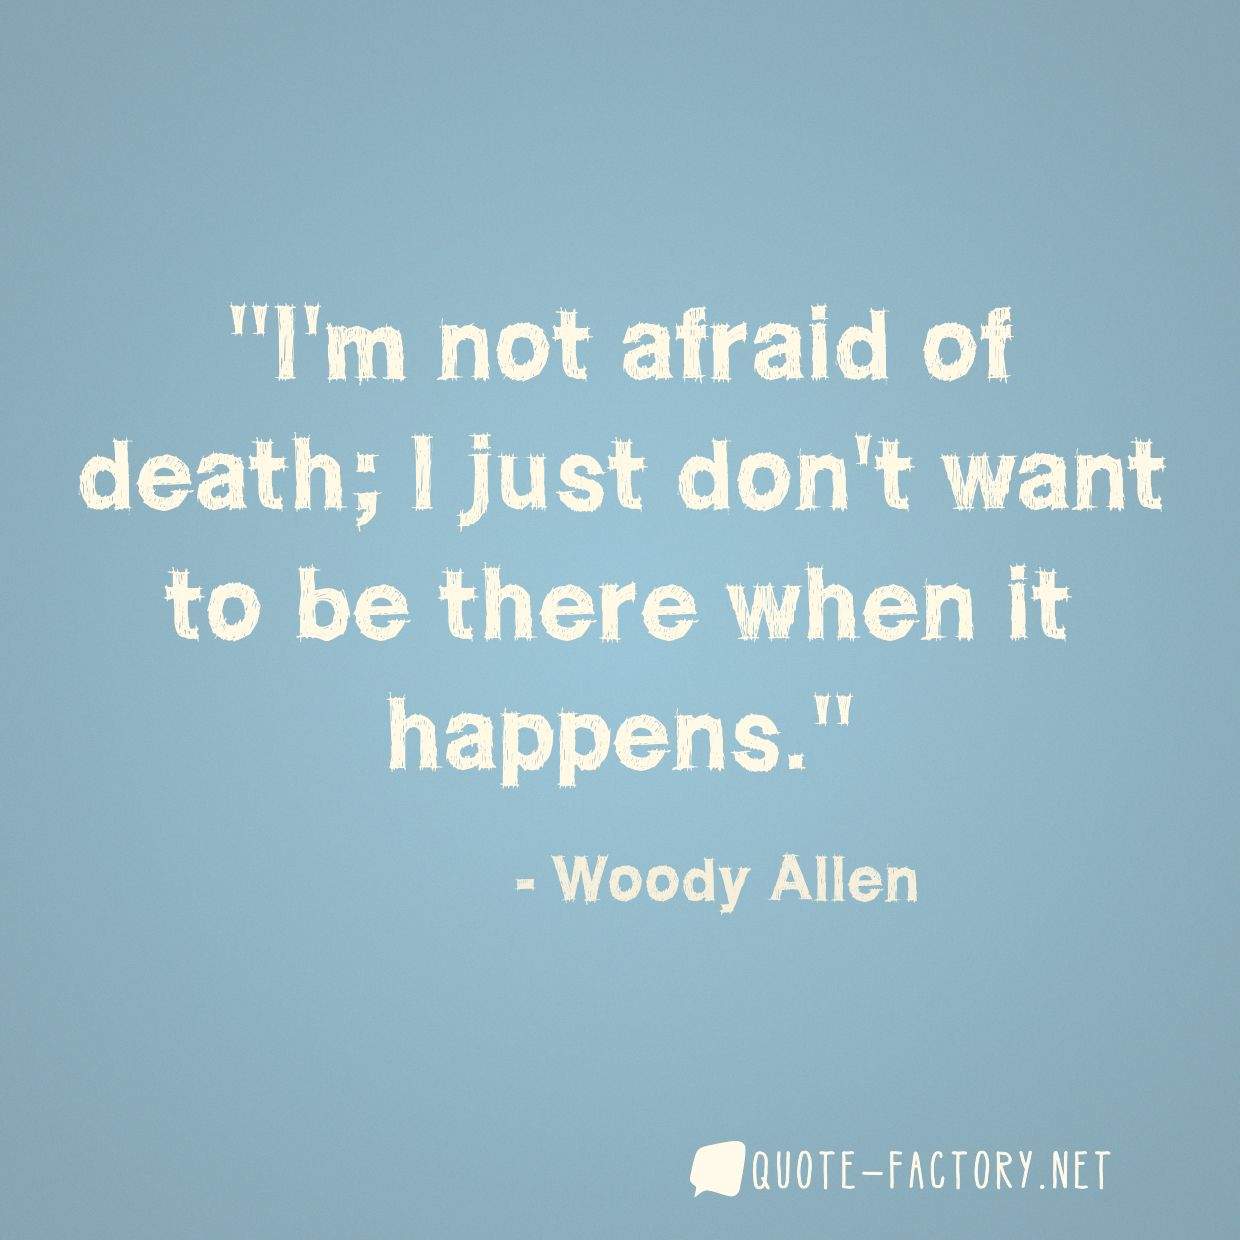 I'm not afraid of death; I just don't want to be there when it happens.